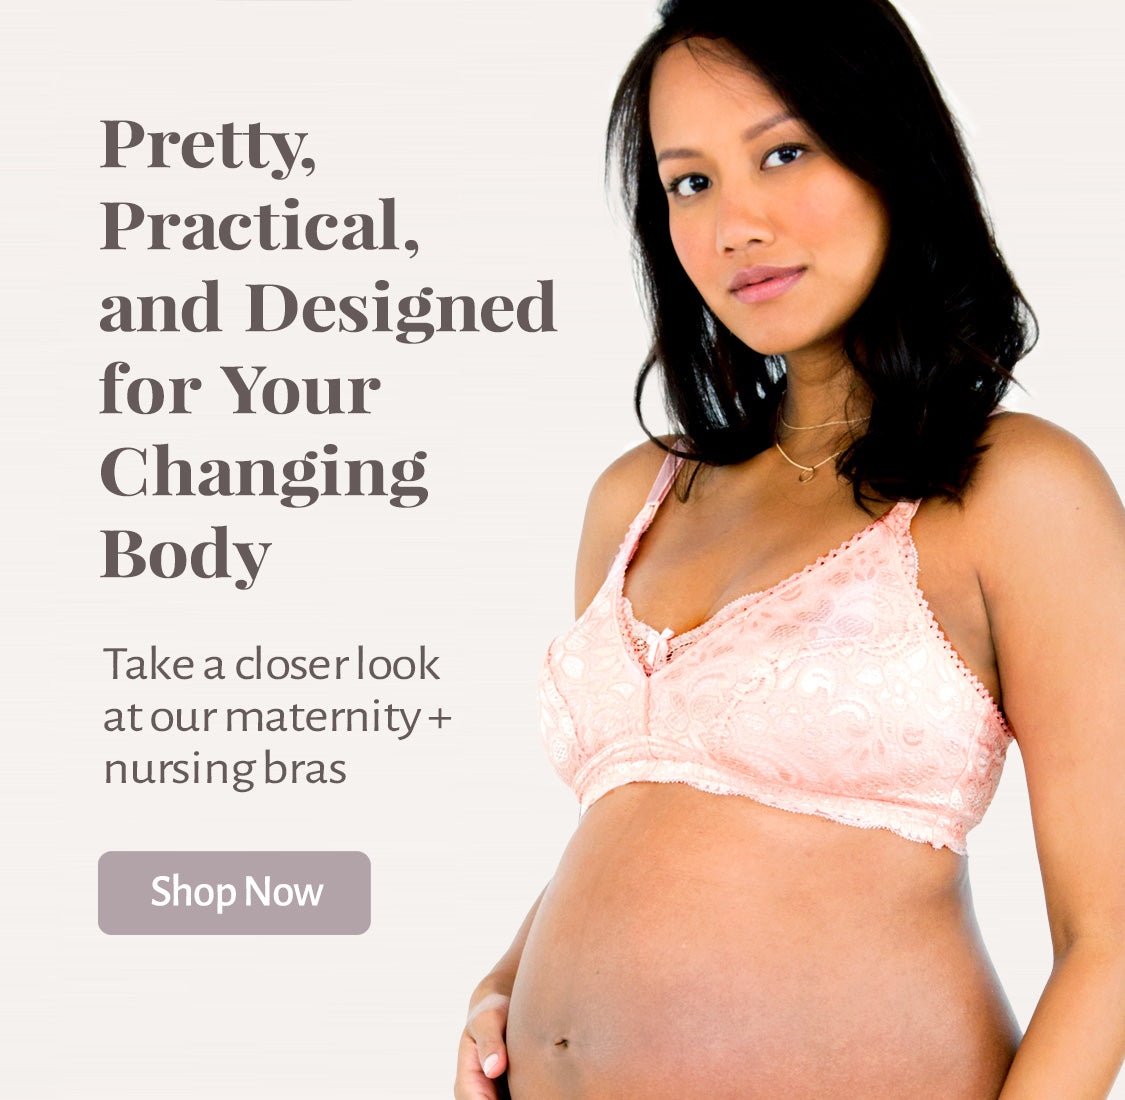 Pretty, Practical, and Designed for Your Changing Body through your pregnancy